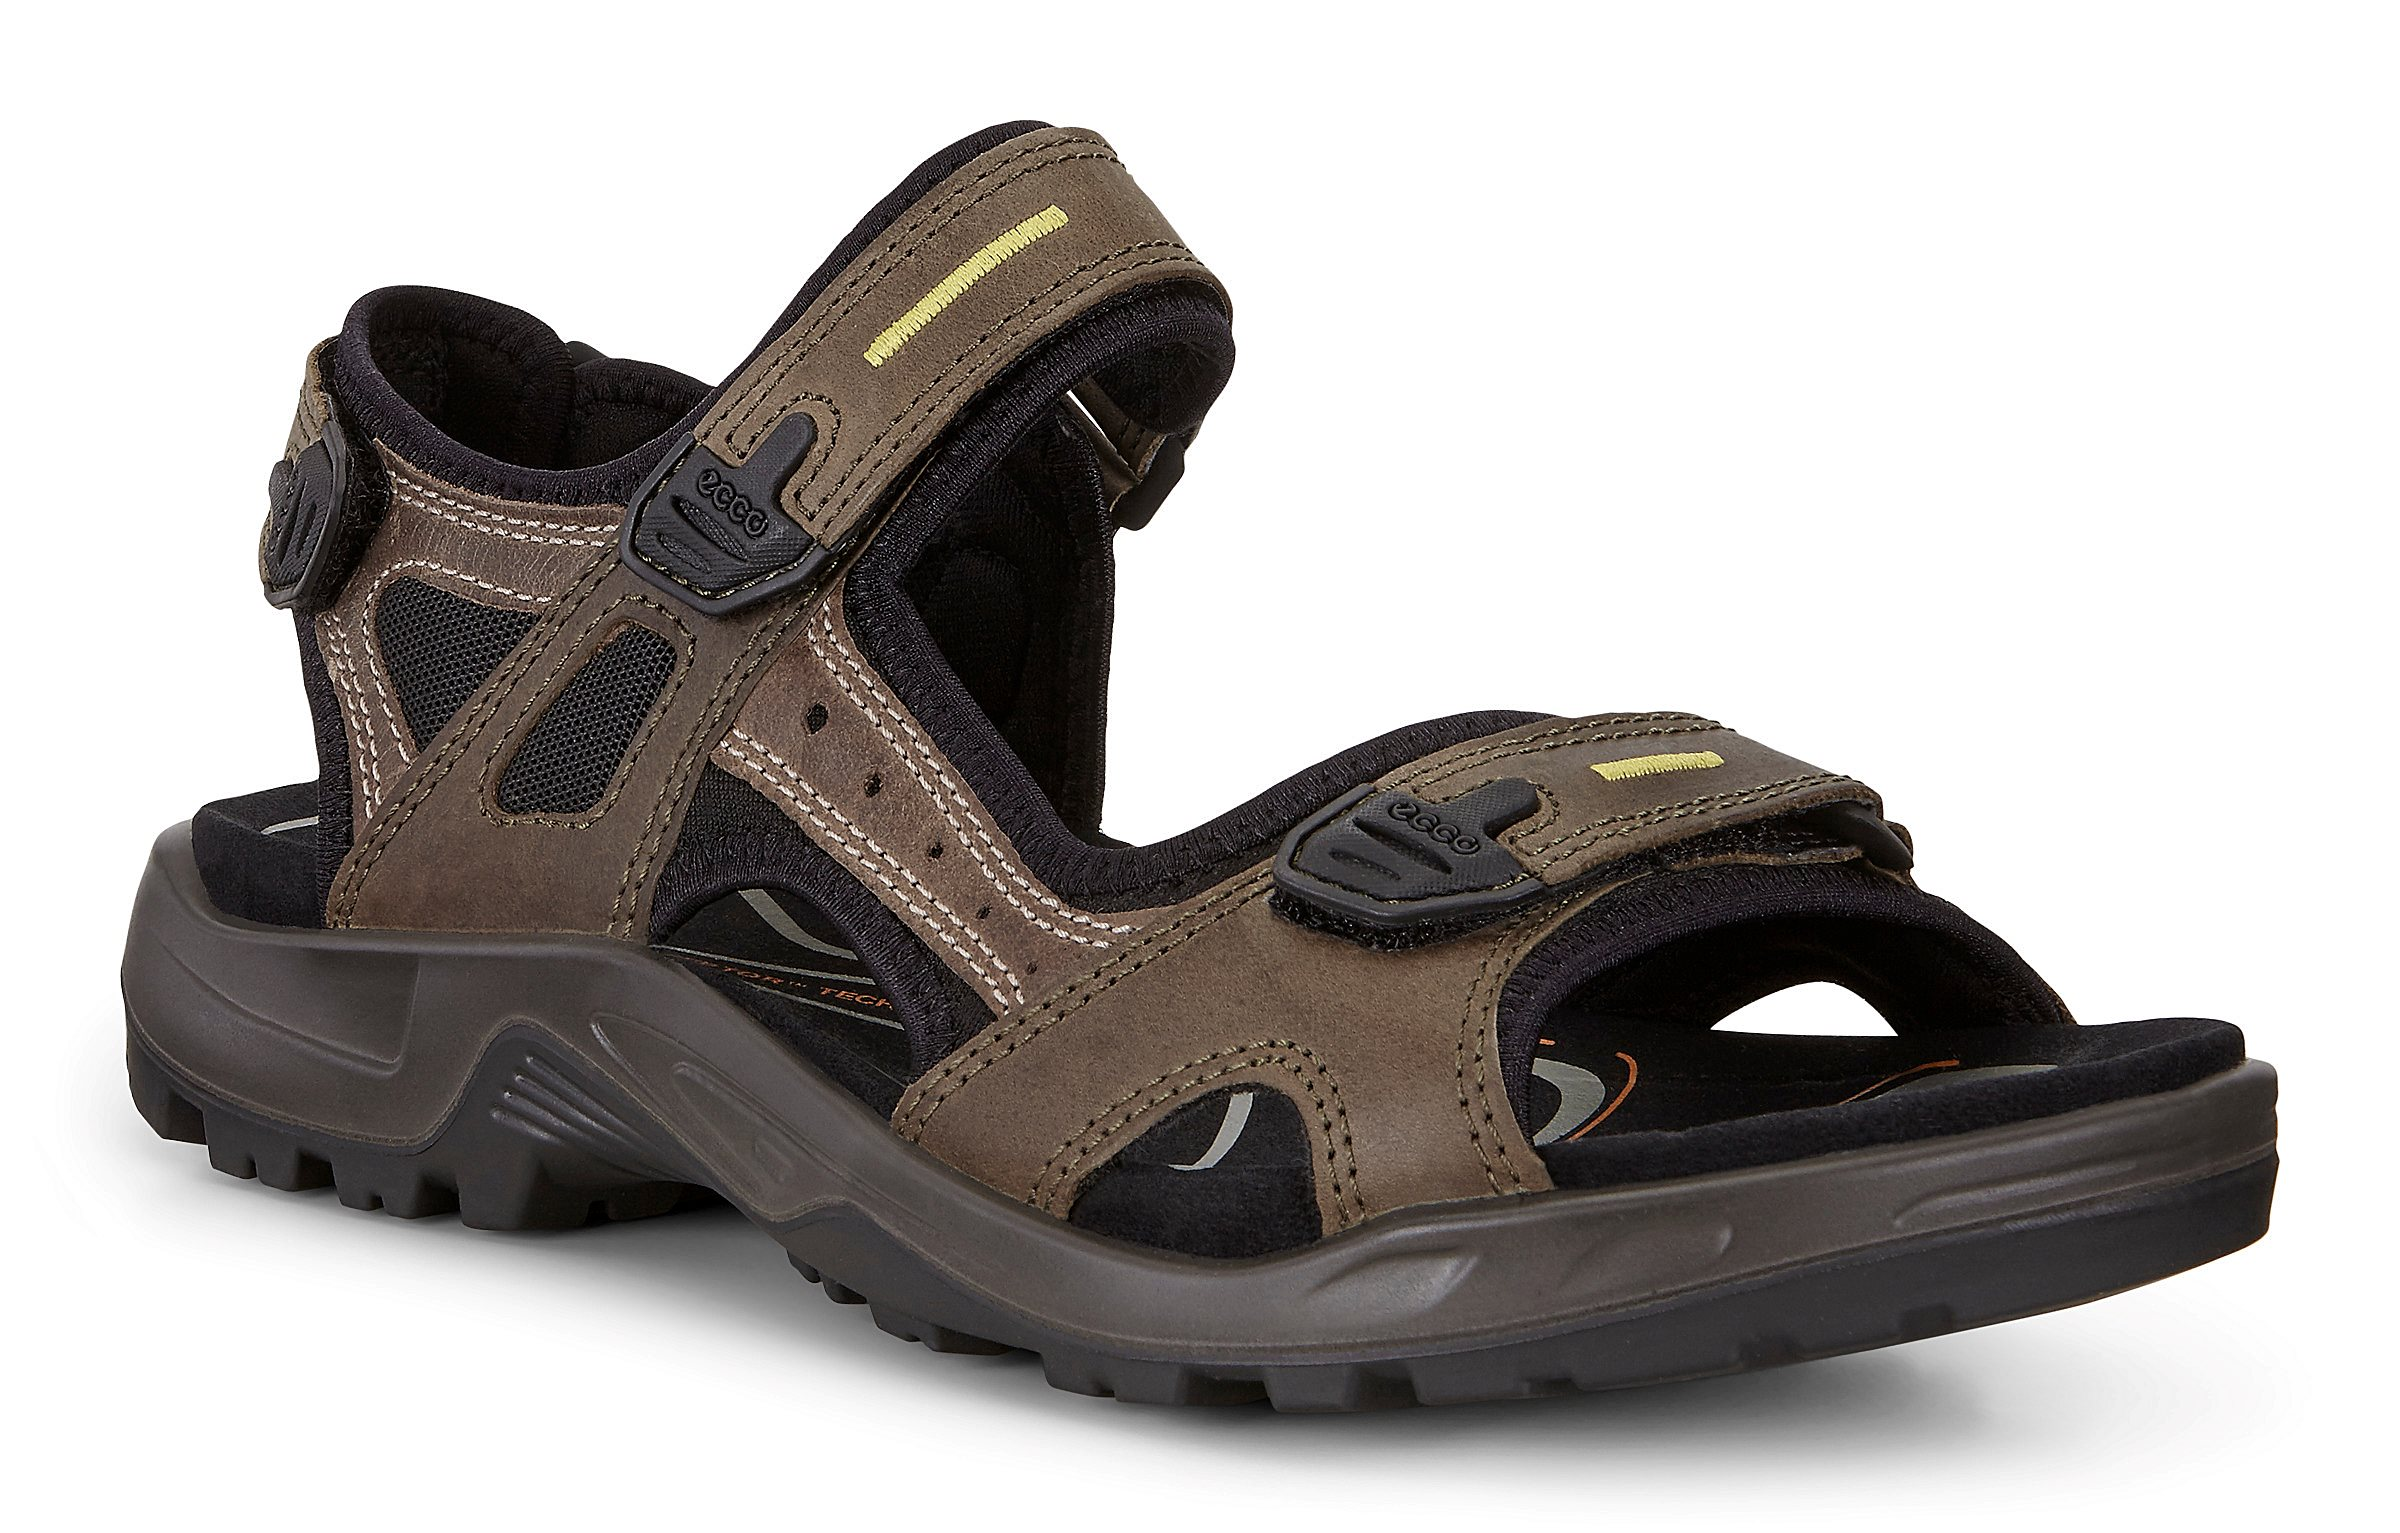 Men's Outdoor Sandals | Buy from the Official ECCO® Online Store